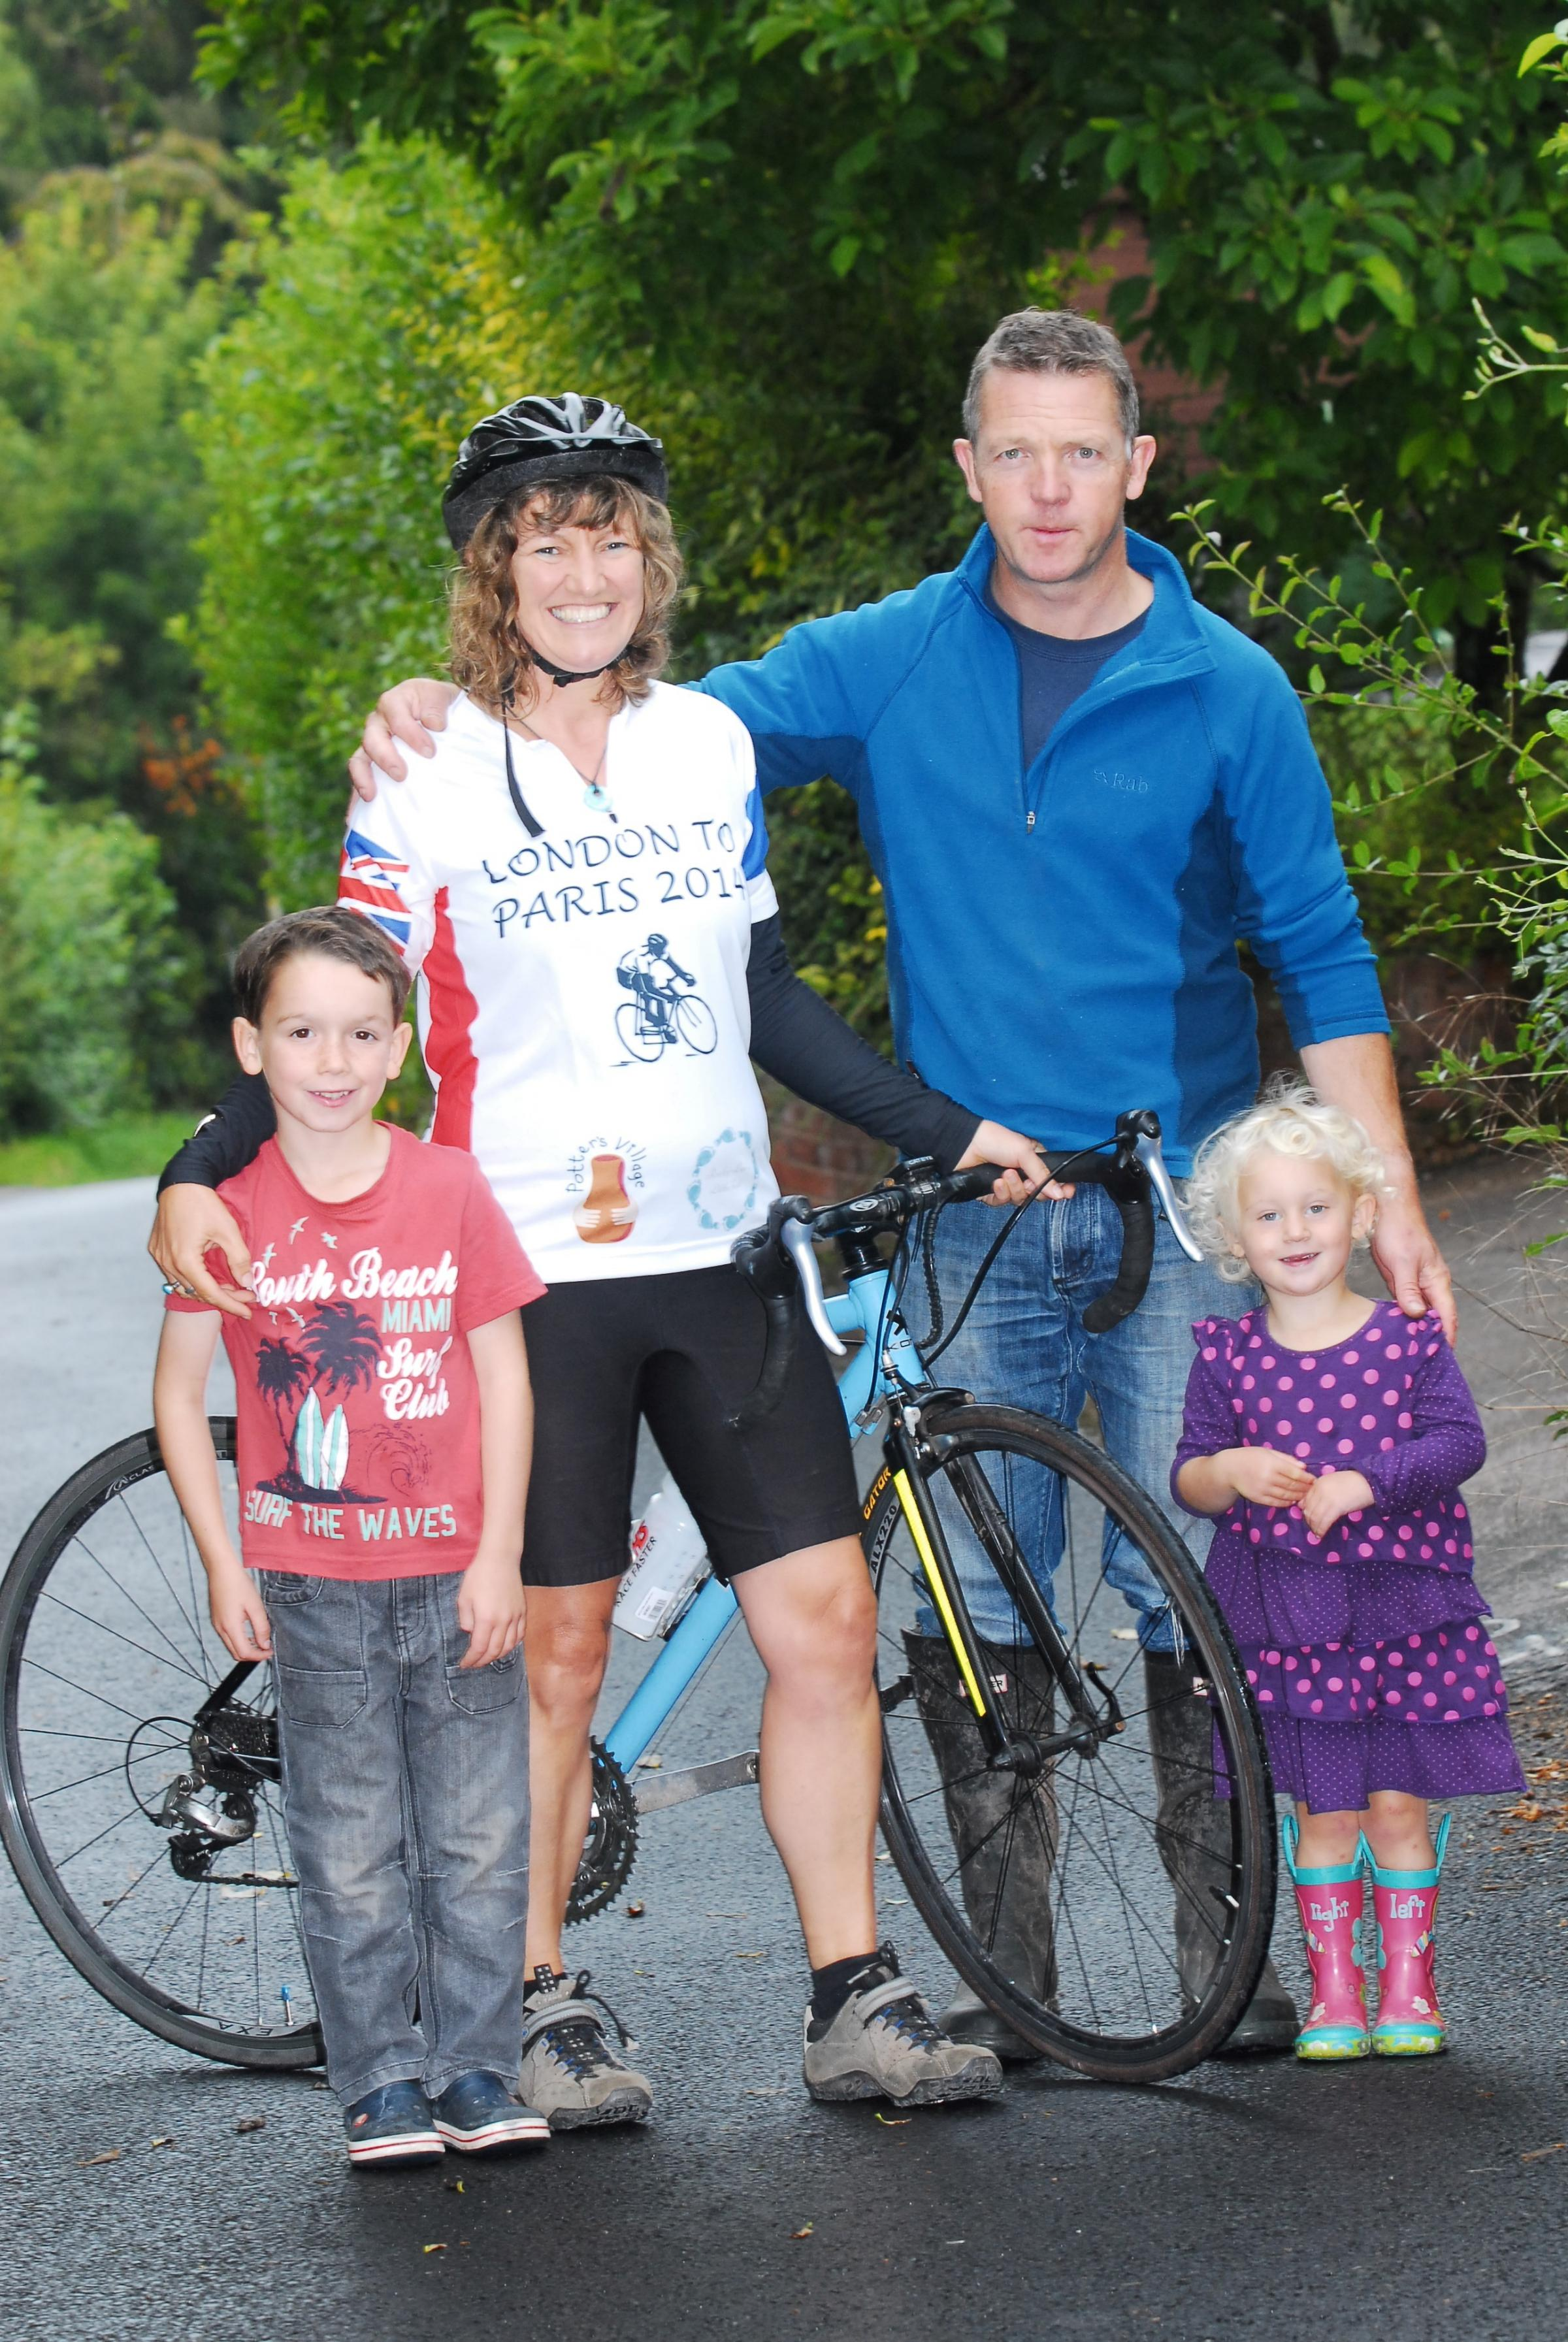 Herefordshire mum to cycle from London to Paris in charity fundraising bid